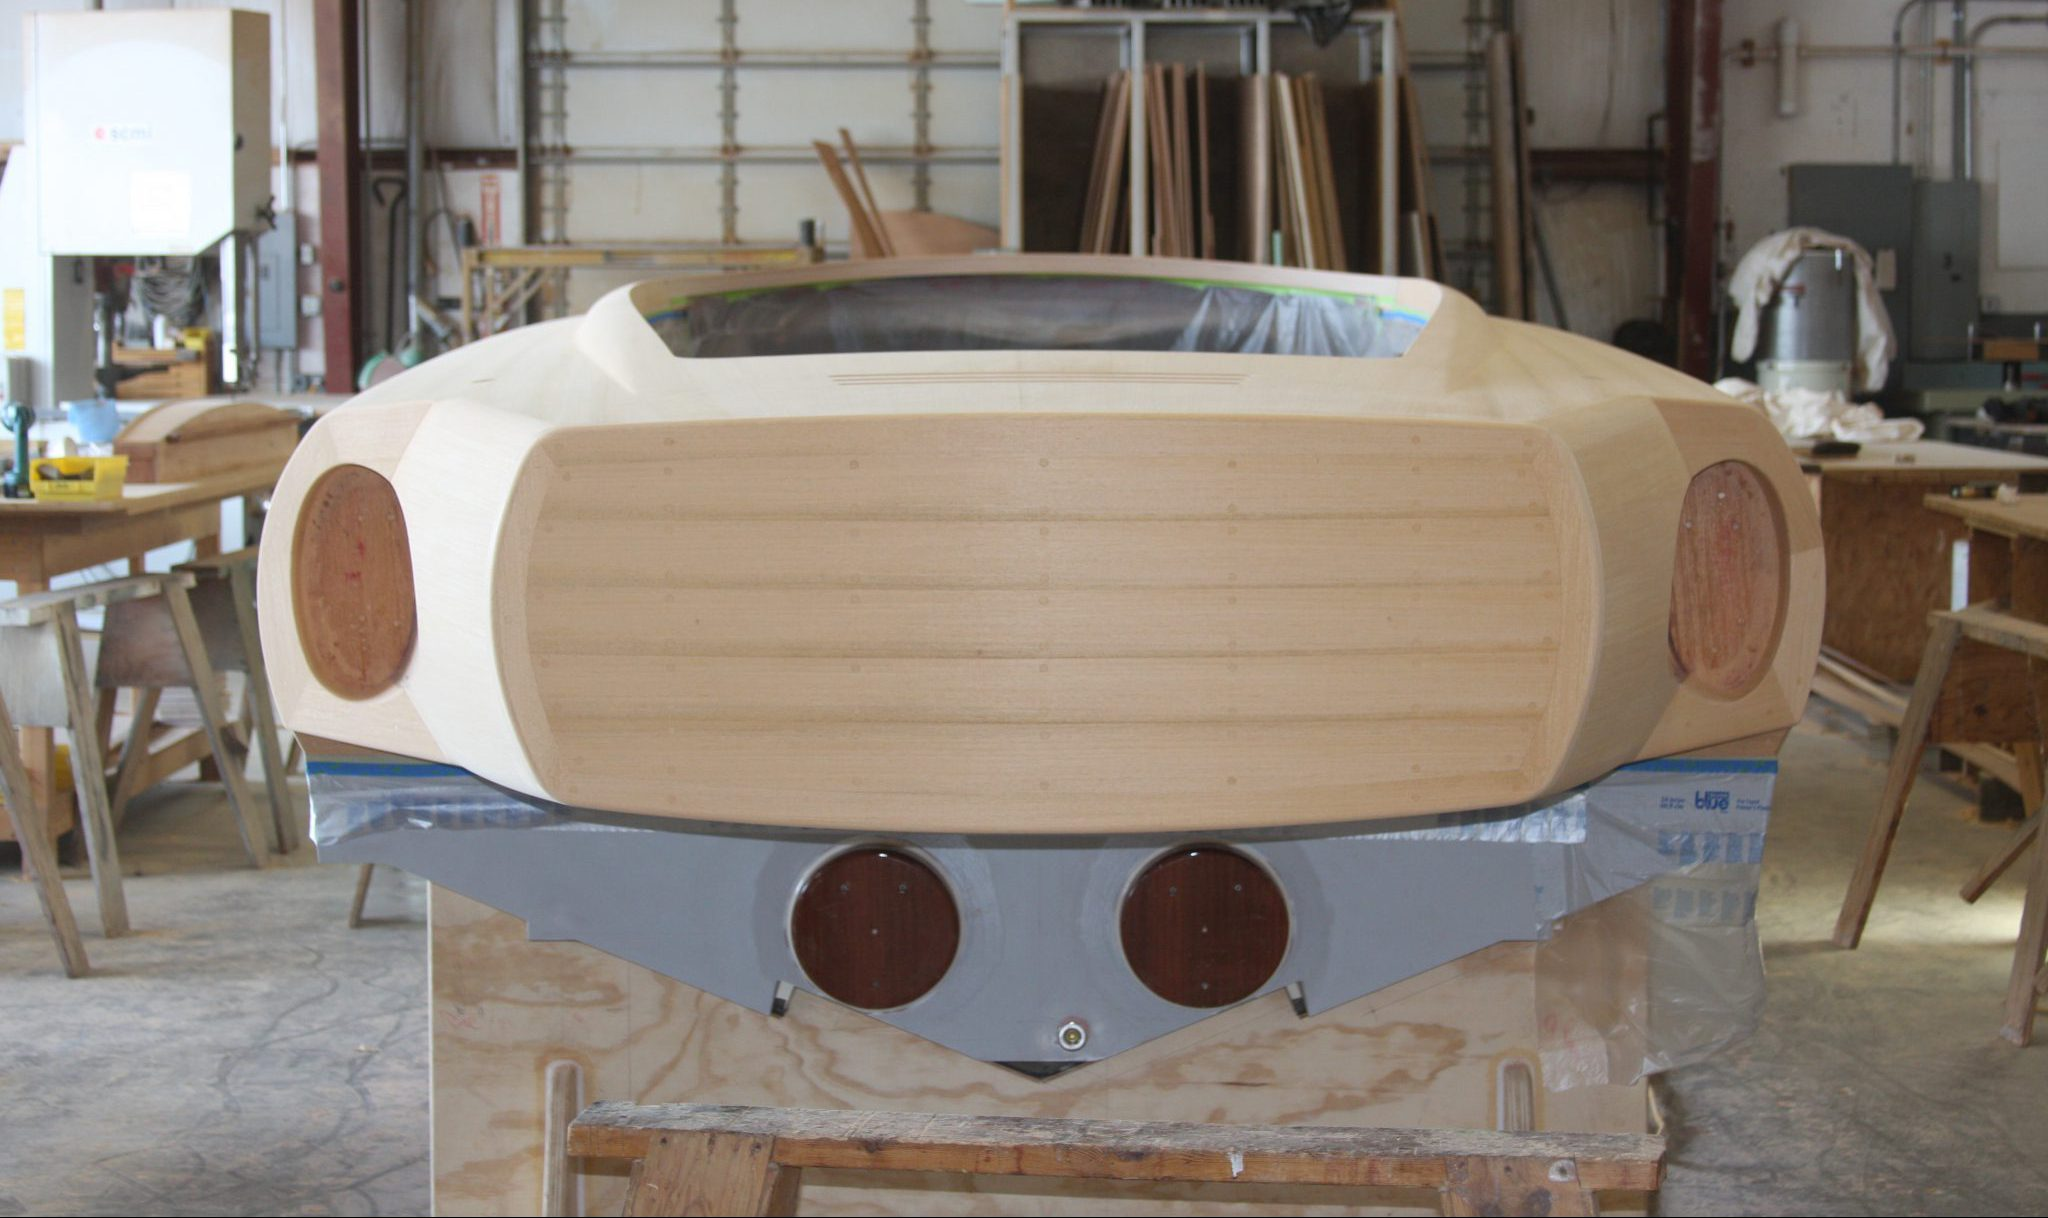 Sleek curves of VZ hull in the raw